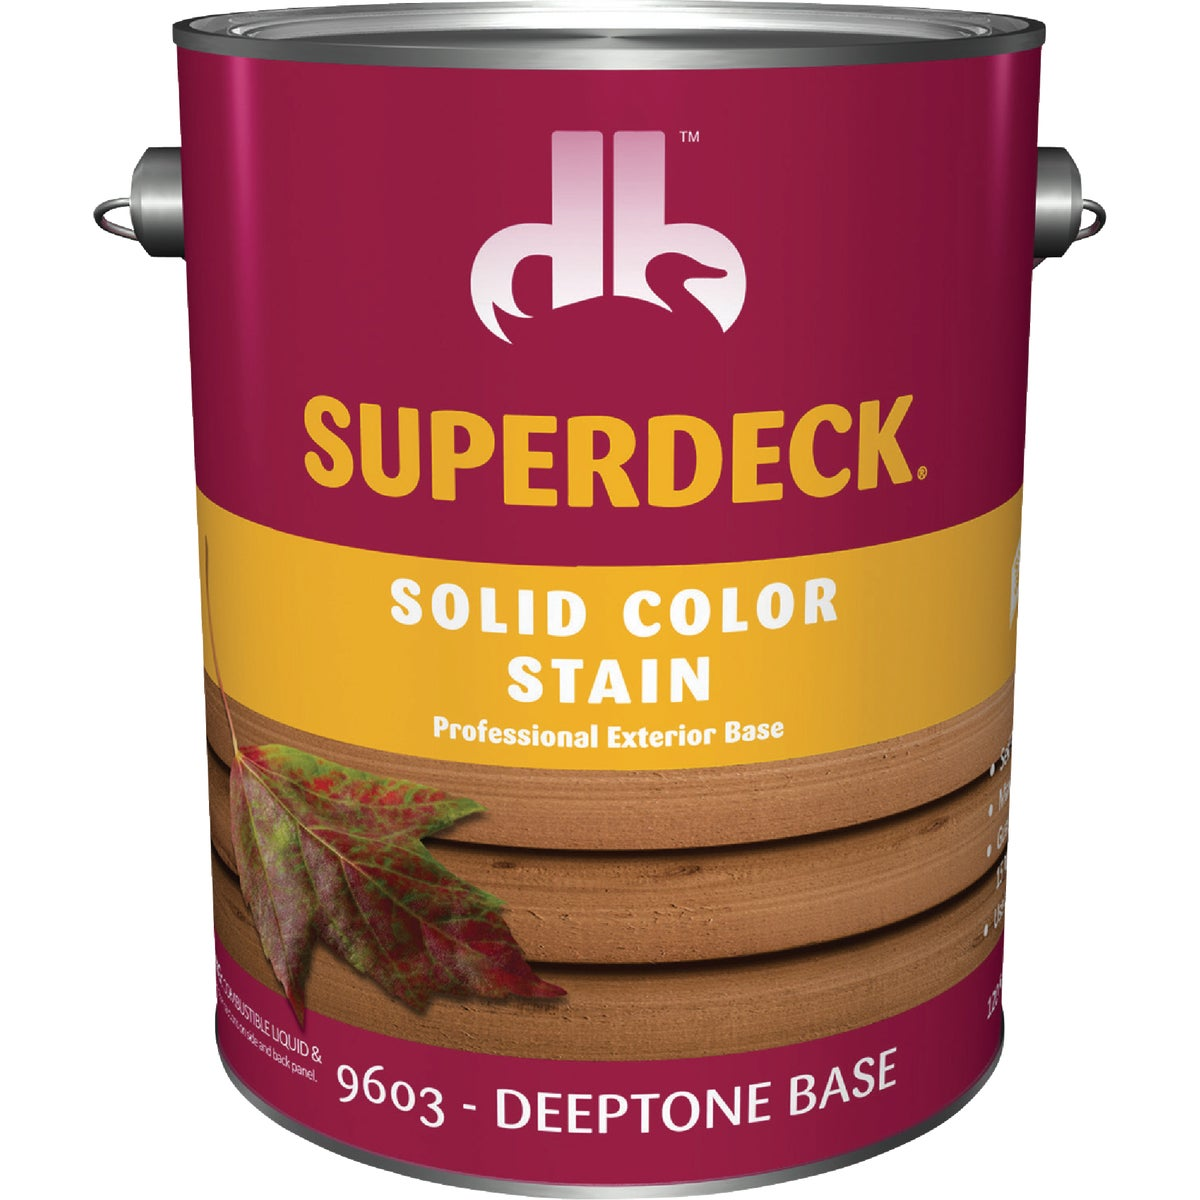 DEEPTN SOLID DECK STAIN - DB9603-4 by Duckback Prod